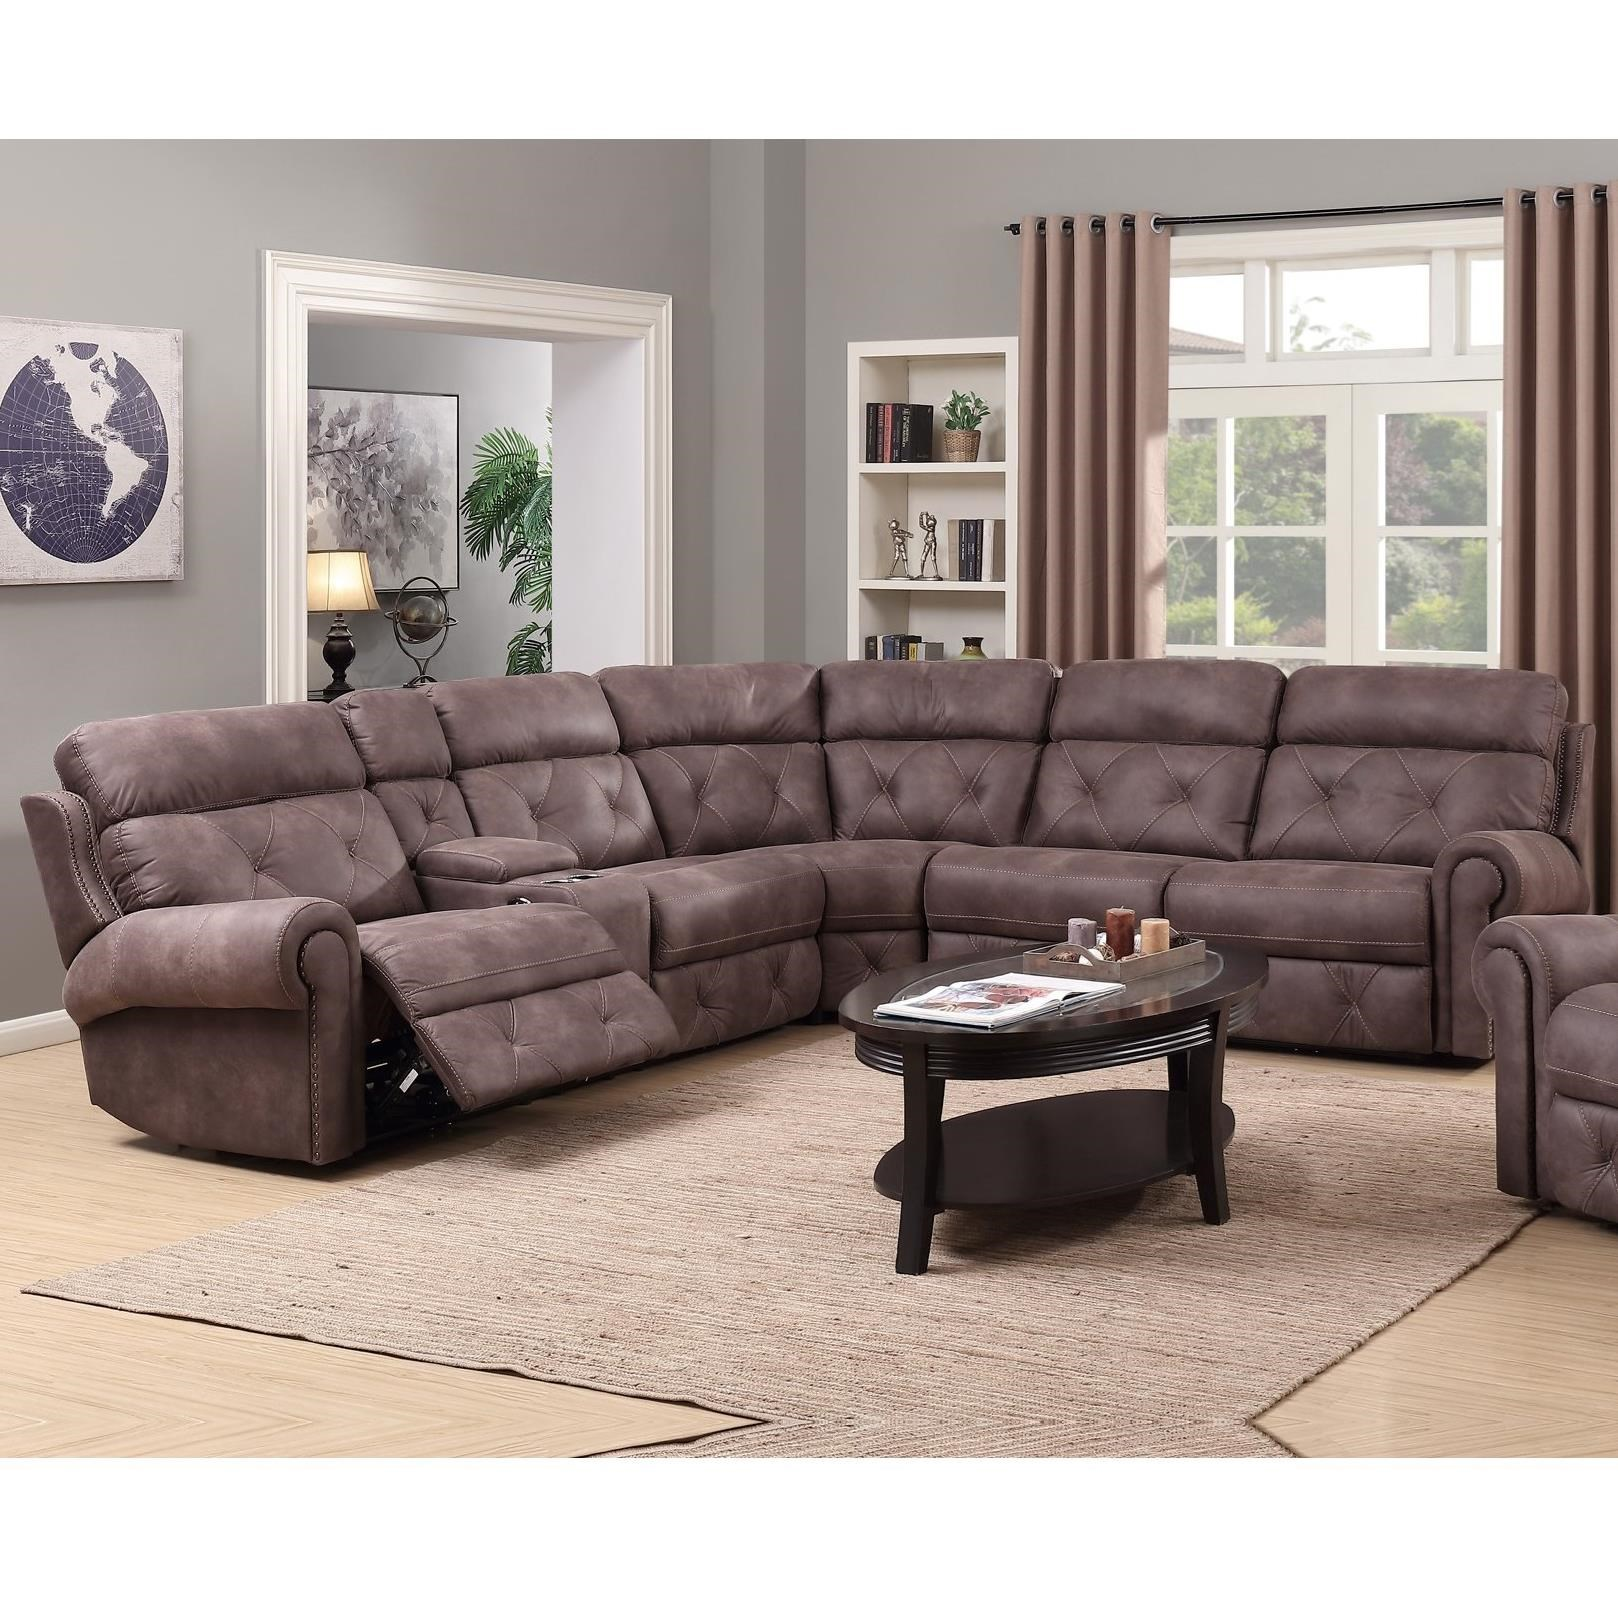 Happy Leather pany 1378 Power Reclining Sectional with Console